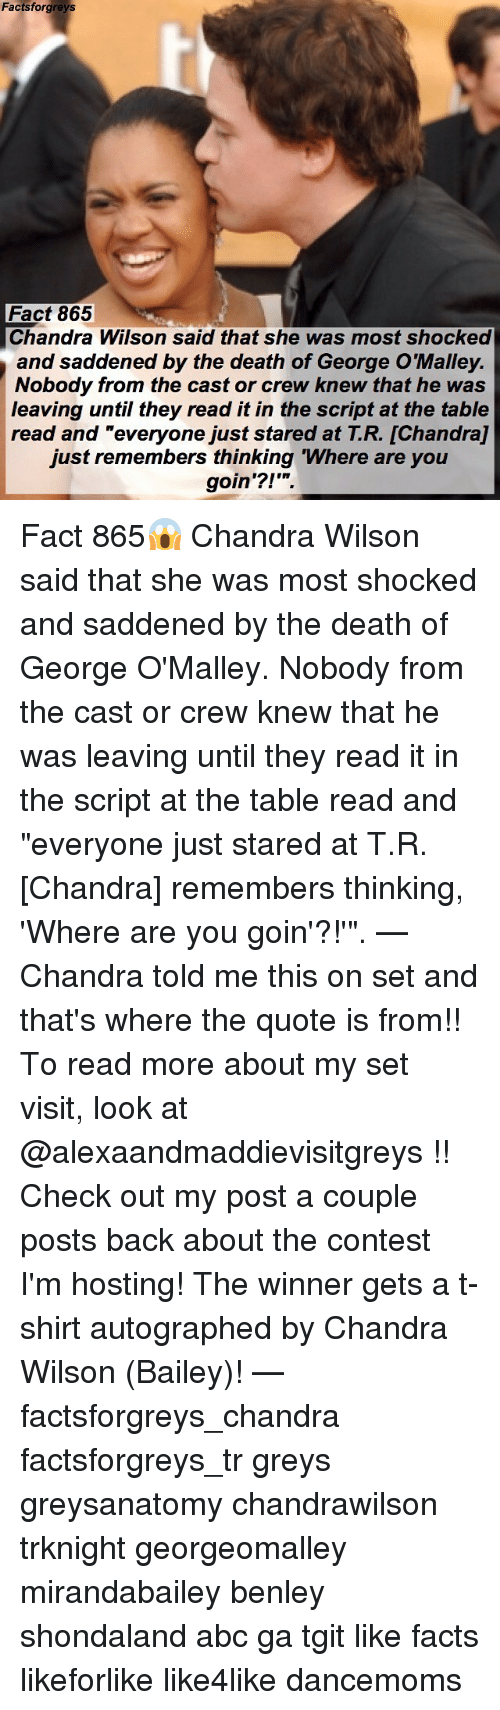 """Abc, Facts, and Memes: Factsforgreys  Fact 865  Chandra Wilson said that she was most shocked  and saddened by the death of George O'Malley.  Nobody from the cast or crew knew that he was  leaving until they read it in the script at the table  read and """"everyone just stared at T.R. [Chandra]  just remembers thinking Where are you  goin'?!' Fact 865😱 Chandra Wilson said that she was most shocked and saddened by the death of George O'Malley. Nobody from the cast or crew knew that he was leaving until they read it in the script at the table read and """"everyone just stared at T.R. [Chandra] remembers thinking, 'Where are you goin'?!'"""". — Chandra told me this on set and that's where the quote is from!! To read more about my set visit, look at @alexaandmaddievisitgreys !! Check out my post a couple posts back about the contest I'm hosting! The winner gets a t-shirt autographed by Chandra Wilson (Bailey)! — factsforgreys_chandra factsforgreys_tr greys greysanatomy chandrawilson trknight georgeomalley mirandabailey benley shondaland abc ga tgit like facts likeforlike like4like dancemoms"""